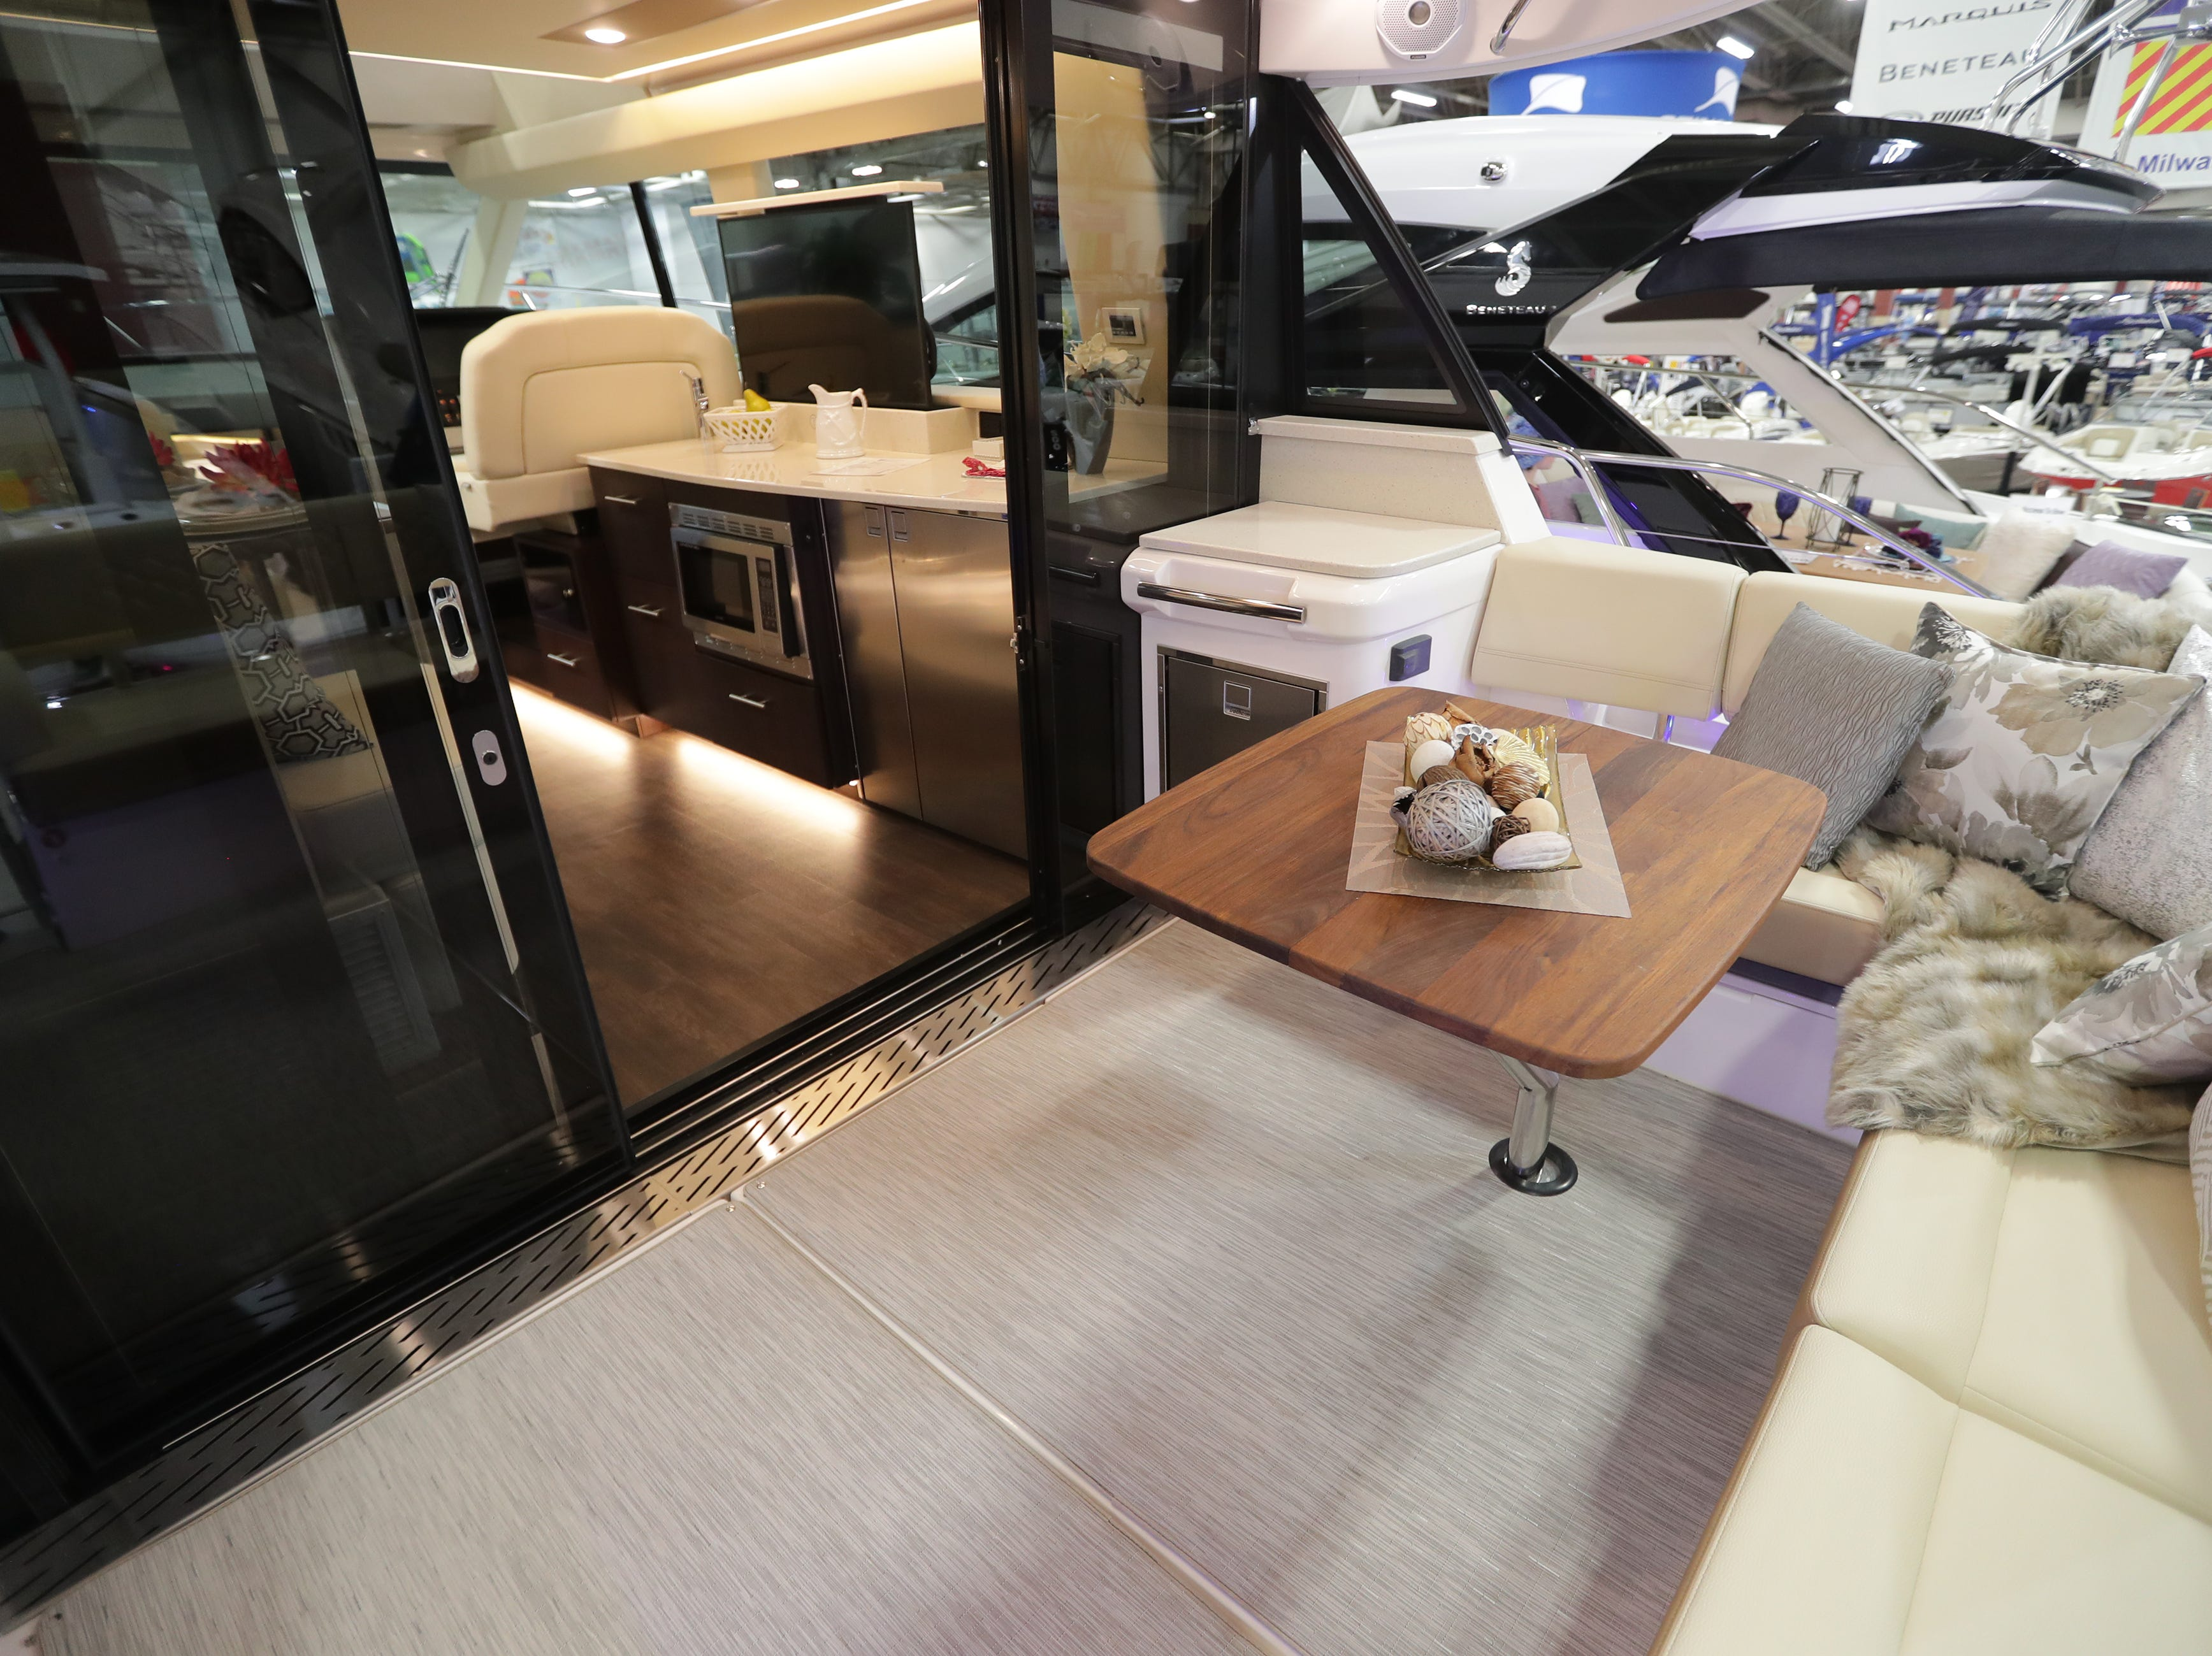 The exterior seating area of a 42-foot Regal Grande Coupe yacht, which lists for $725,000 at the Milwaukee Boat Show at State Fair Park in West Allis on Wednesday, Jan. 23, 2019. The show runs Thursday through Sunday.